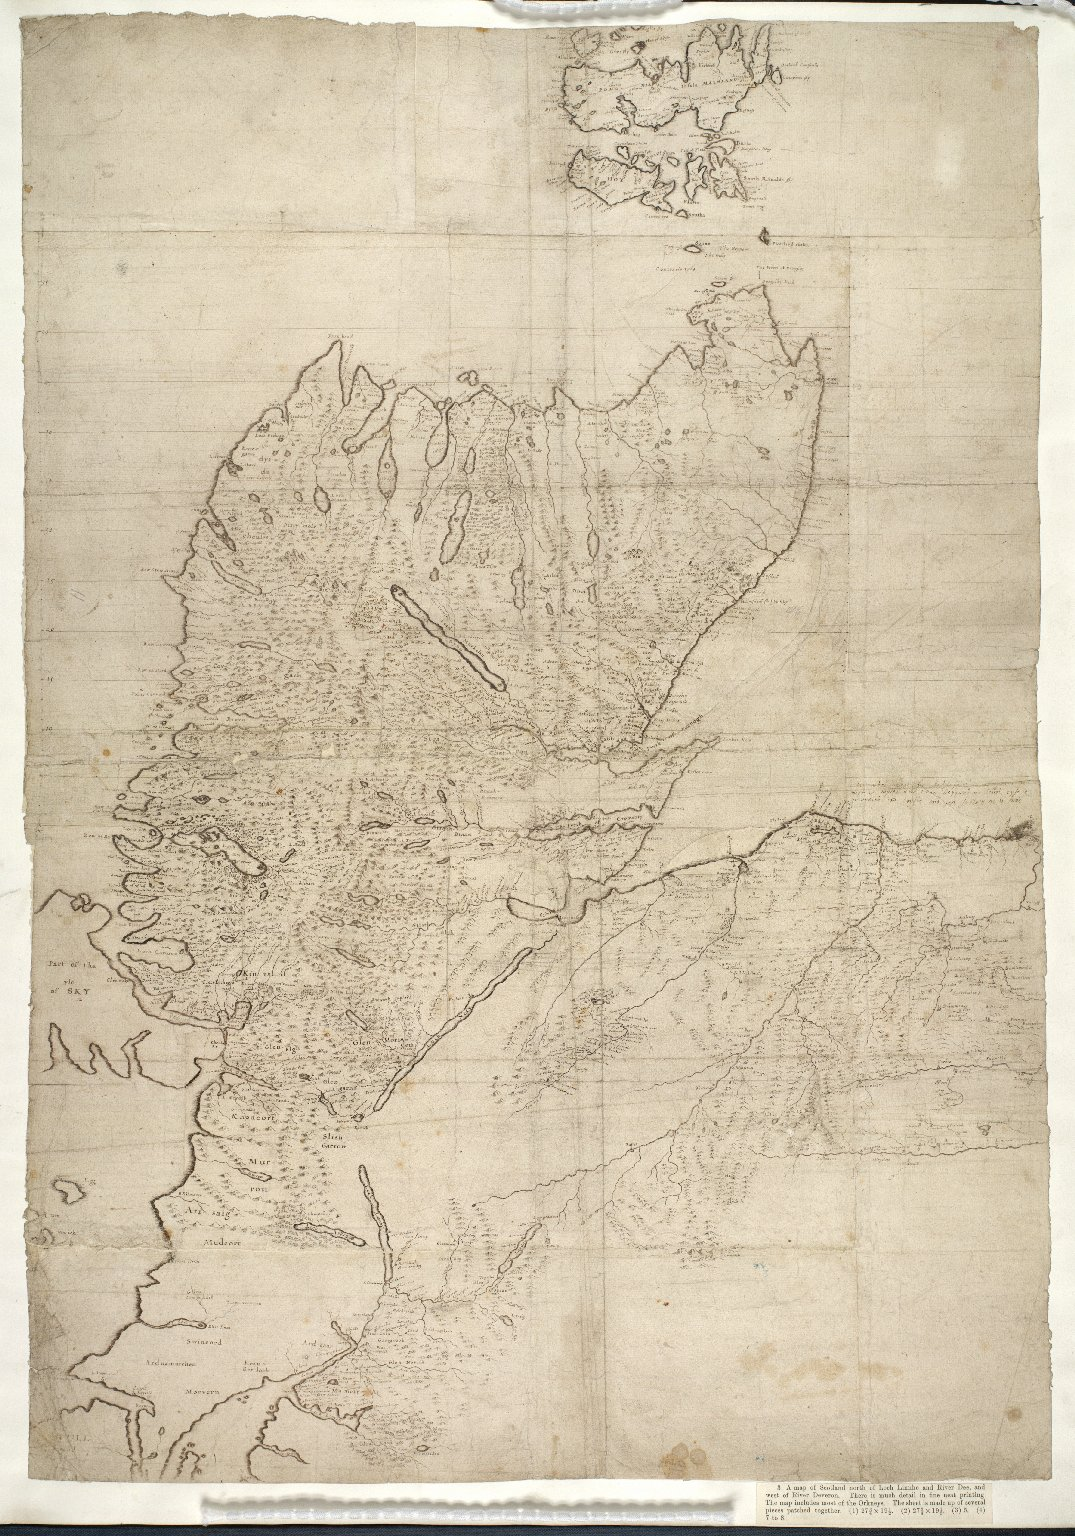 [A map of Scotland north of Loch Linnhe and the River Dee, and west of the River Devron. [3 of 3]